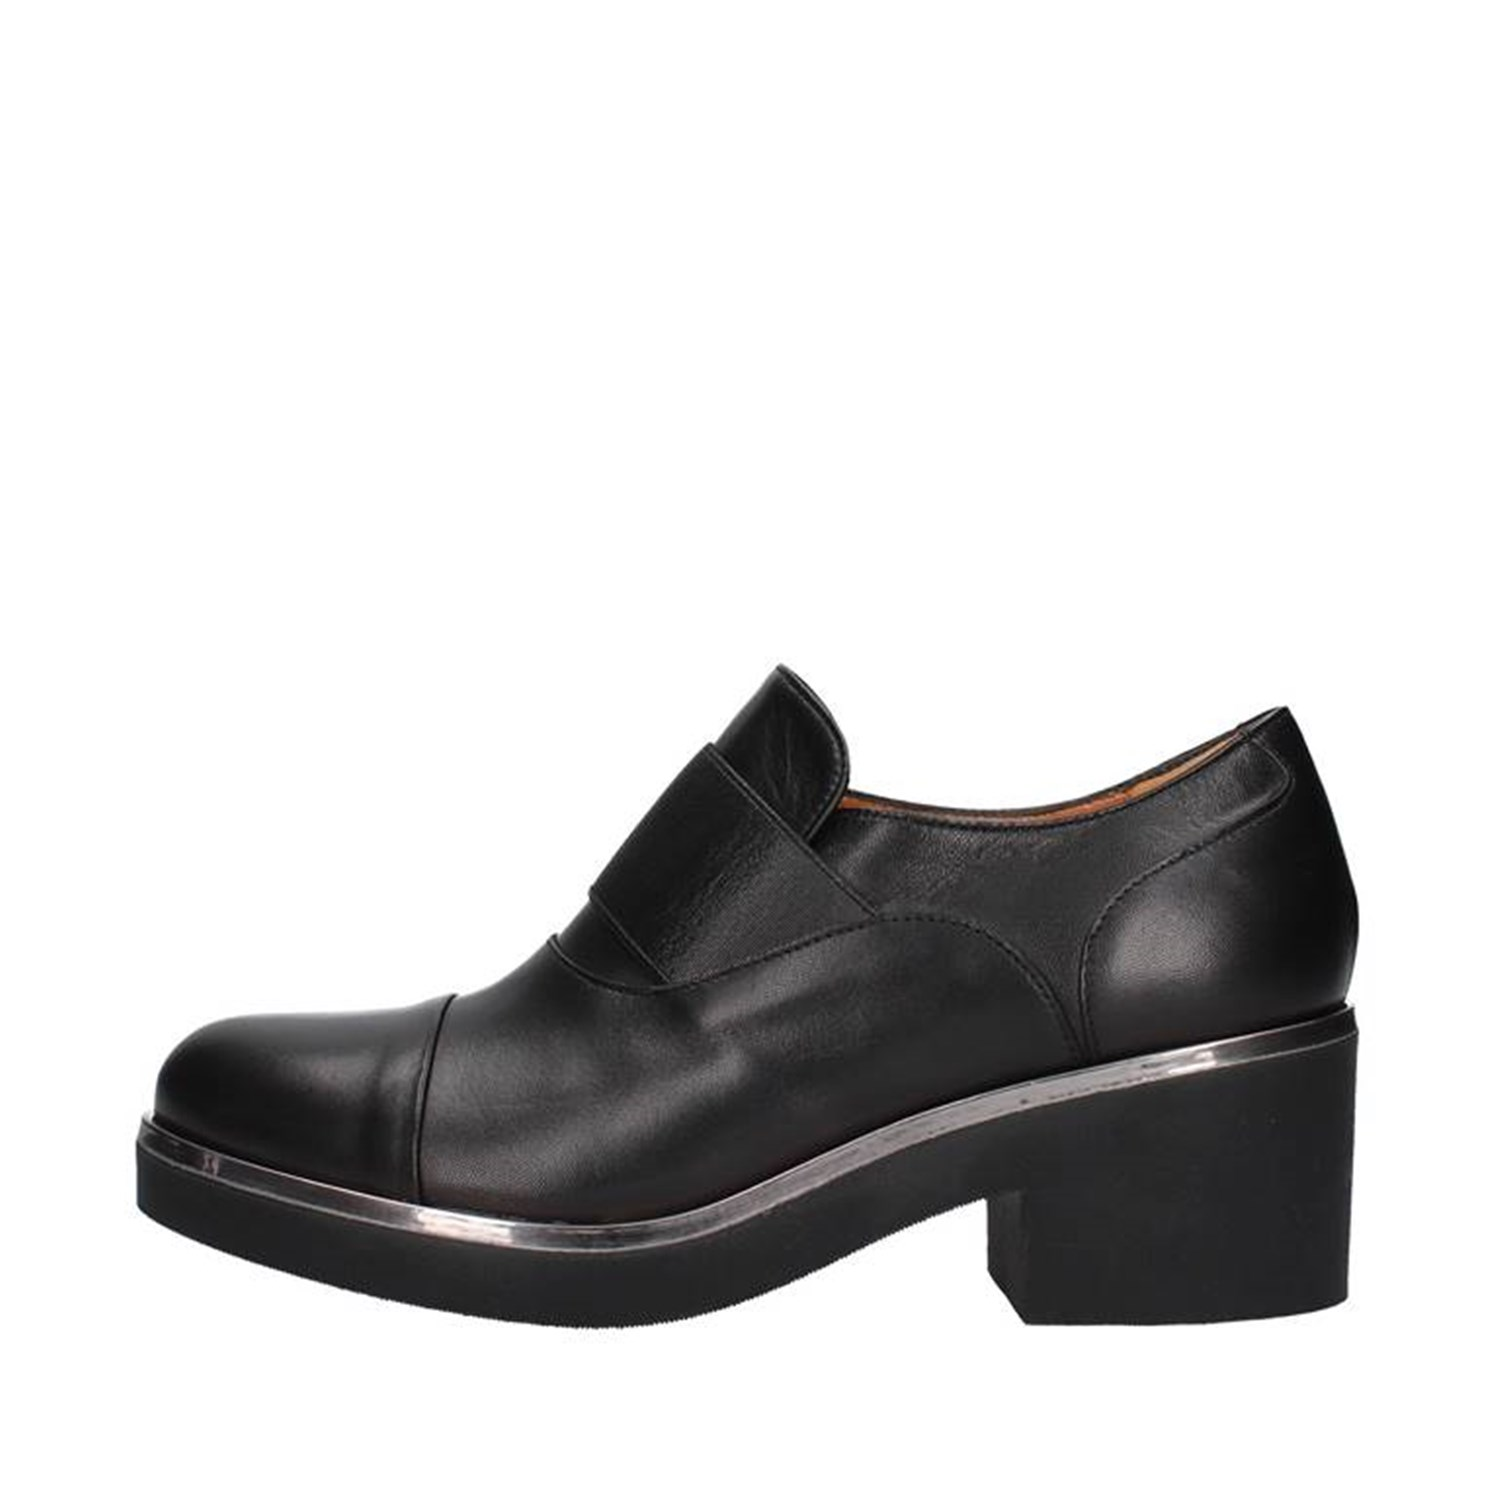 Mot-cle' Shoes Woman Loafers BLACK M555F